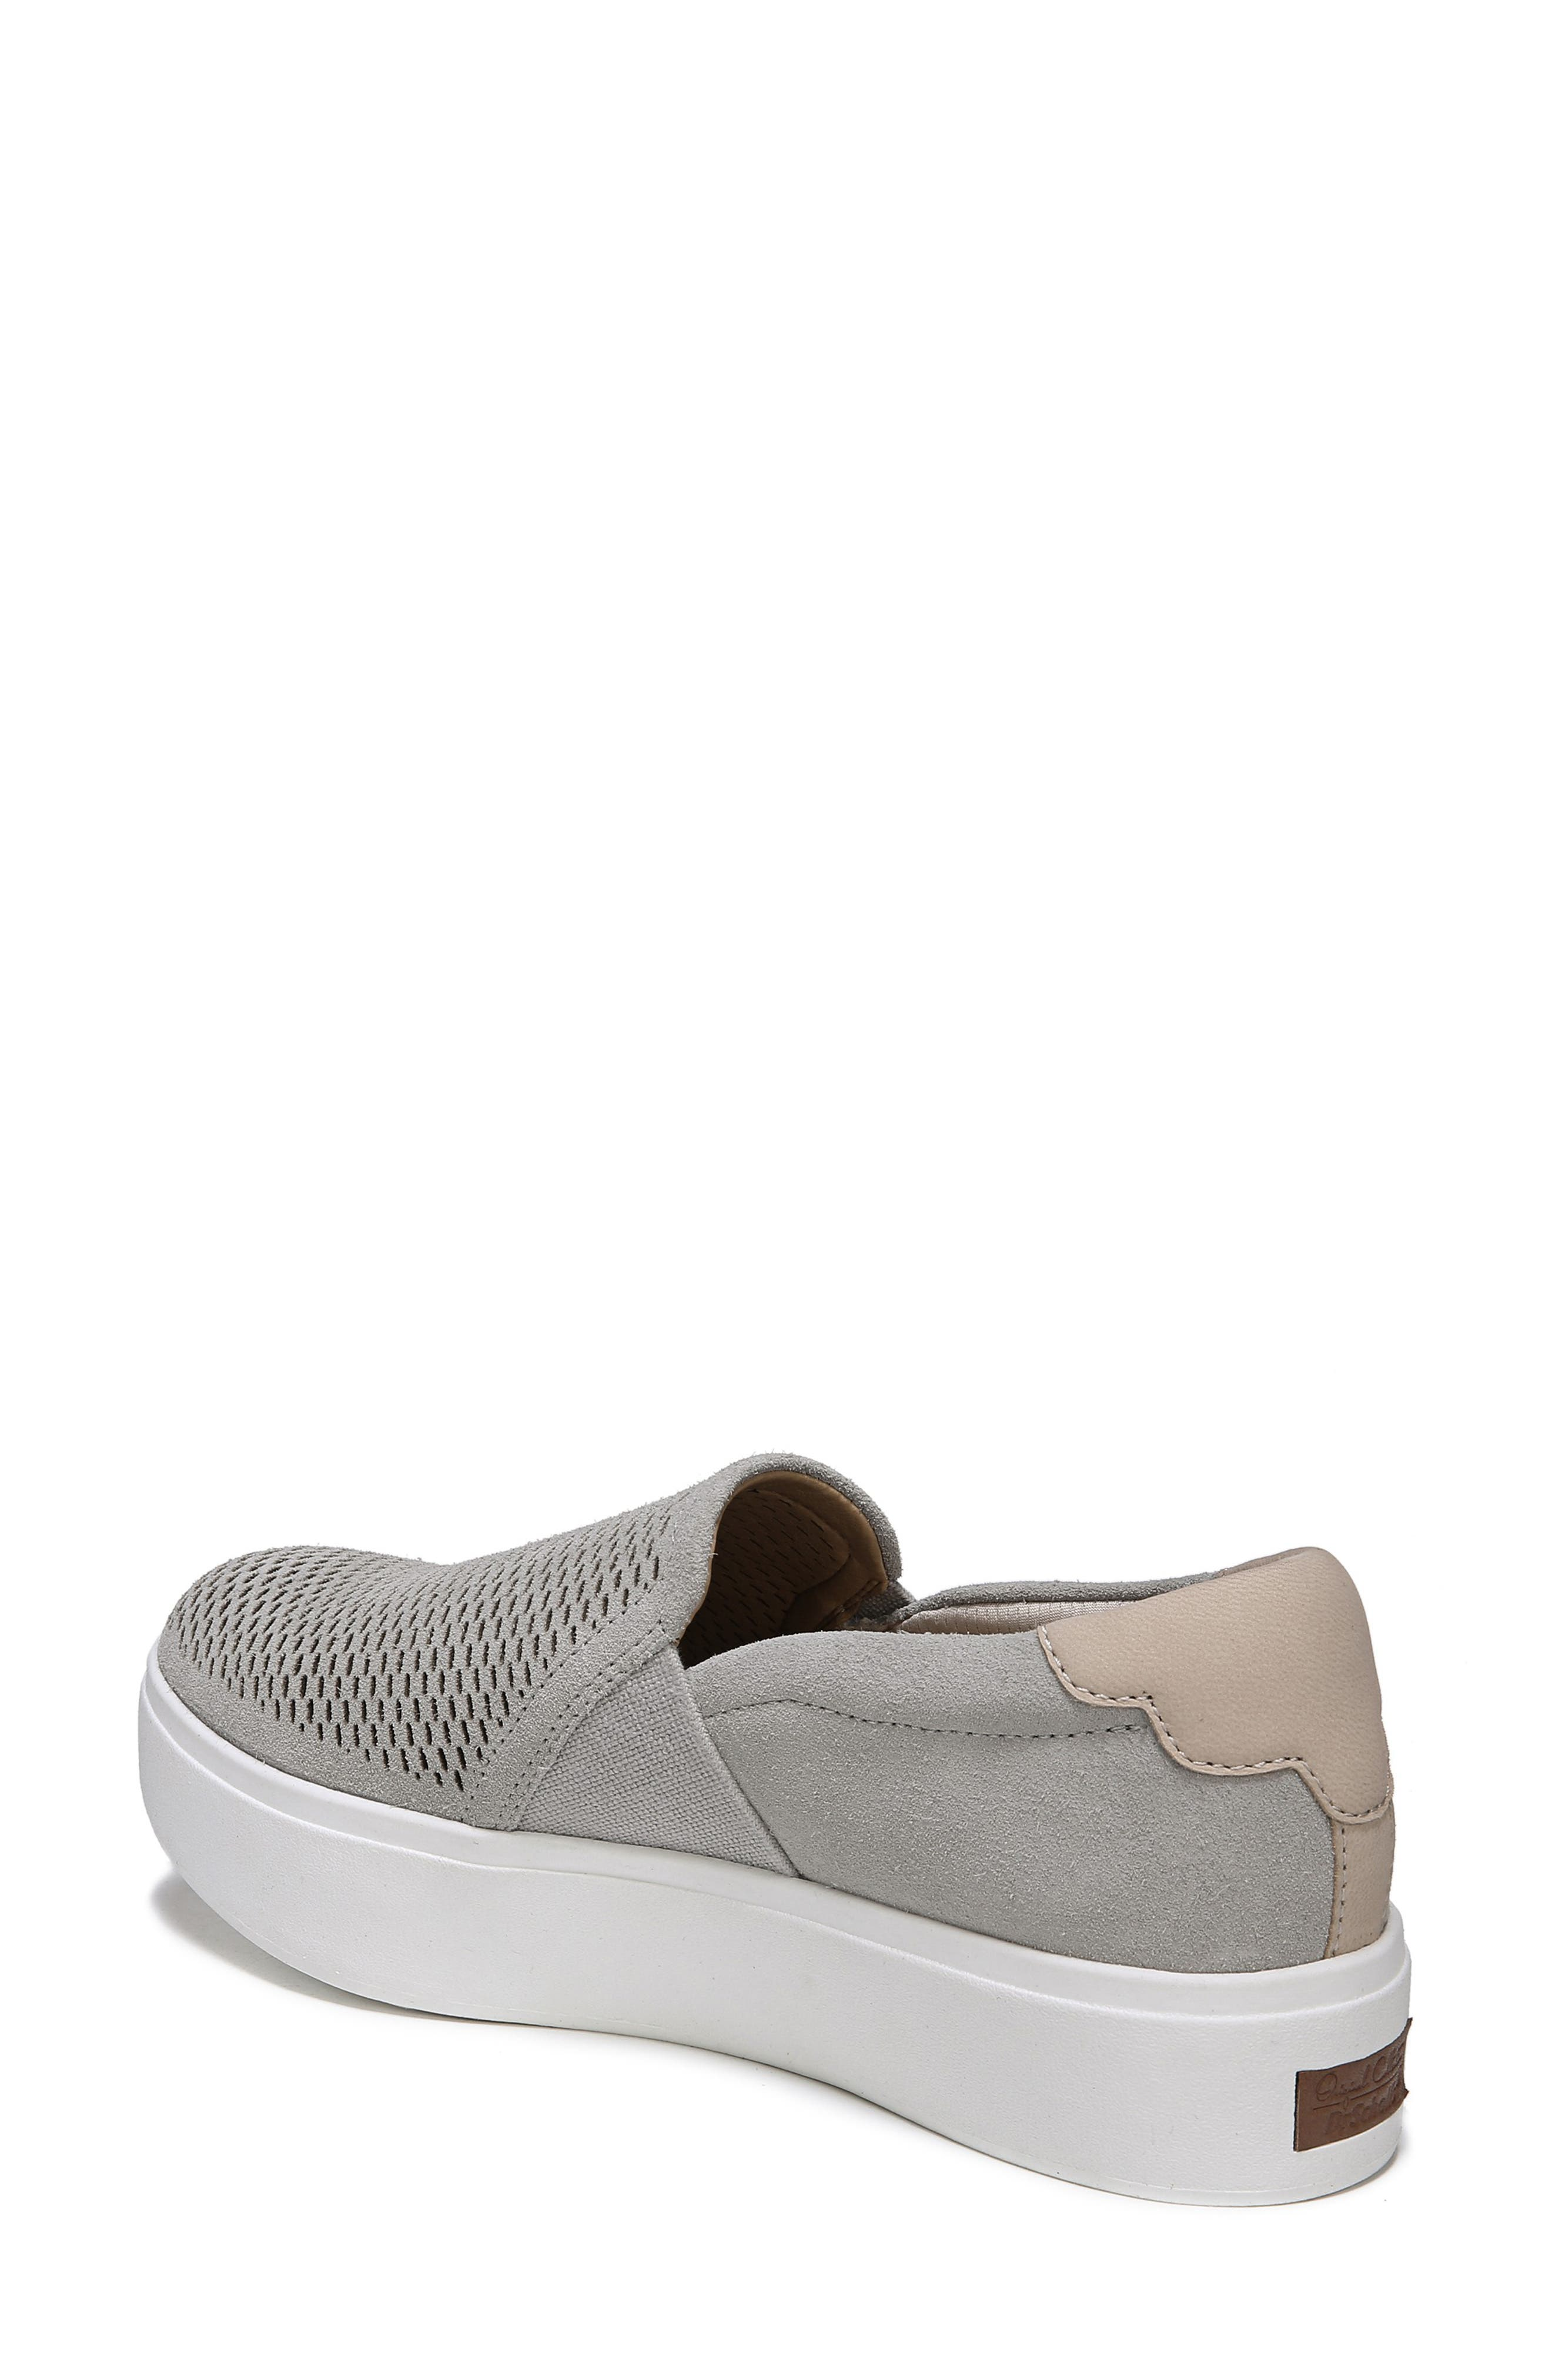 Abbot Lux Sneaker,                             Alternate thumbnail 2, color,                             GREY LEATHER